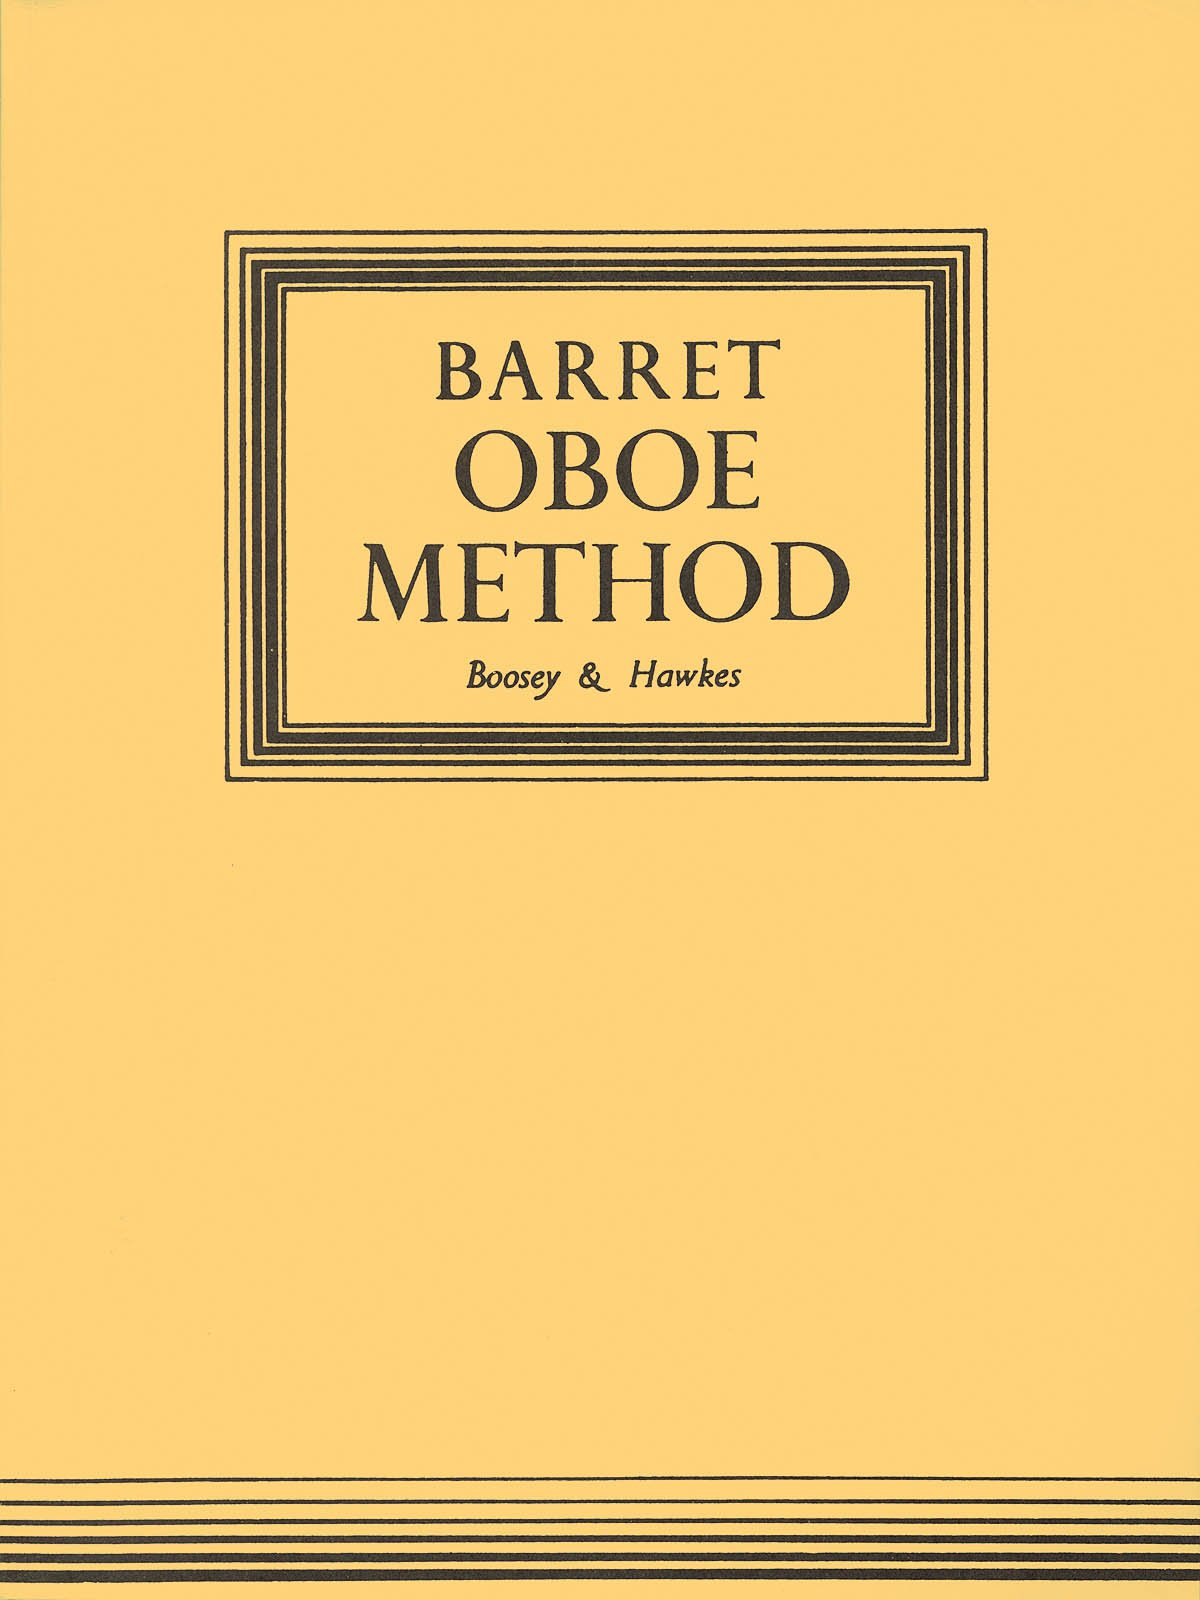 Boosey & Hawkes A Complete Method for the Oboe (Original Edition)